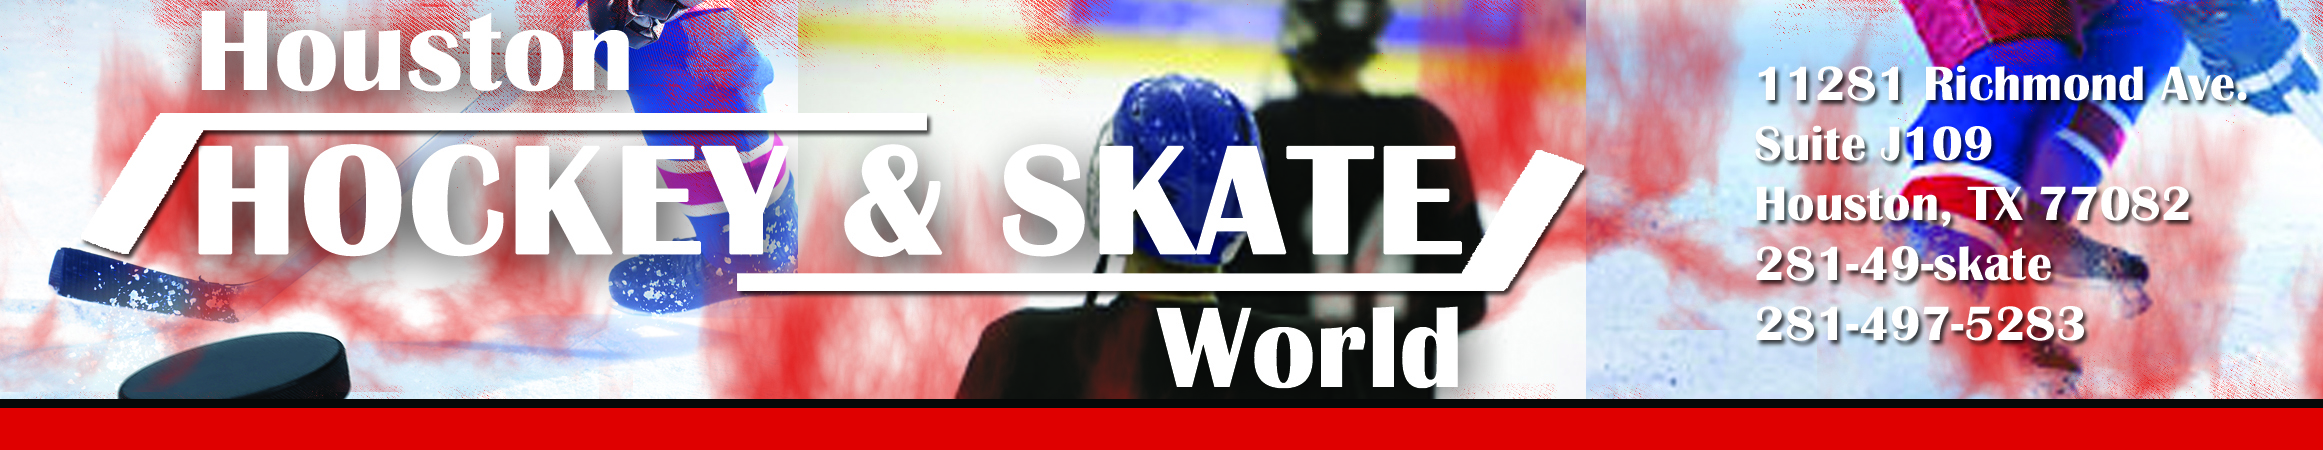 Houston Hockey and Skate World